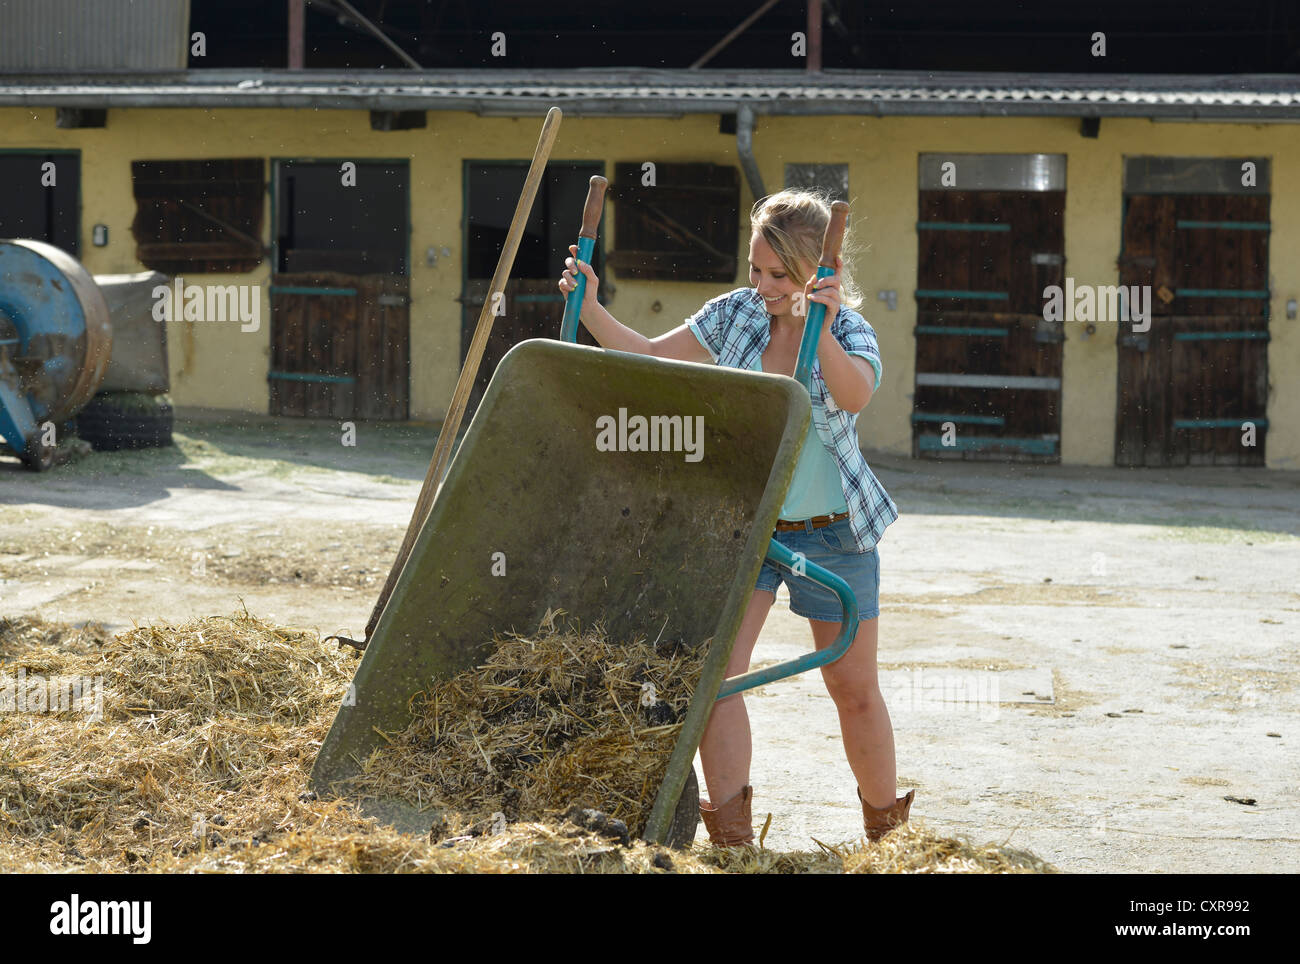 Young female farmer, horse manure, cleaning out, push cart, wheelbarrow, Gingen, Baden-Wuerttemberg, Germany, Europe Stock Photo